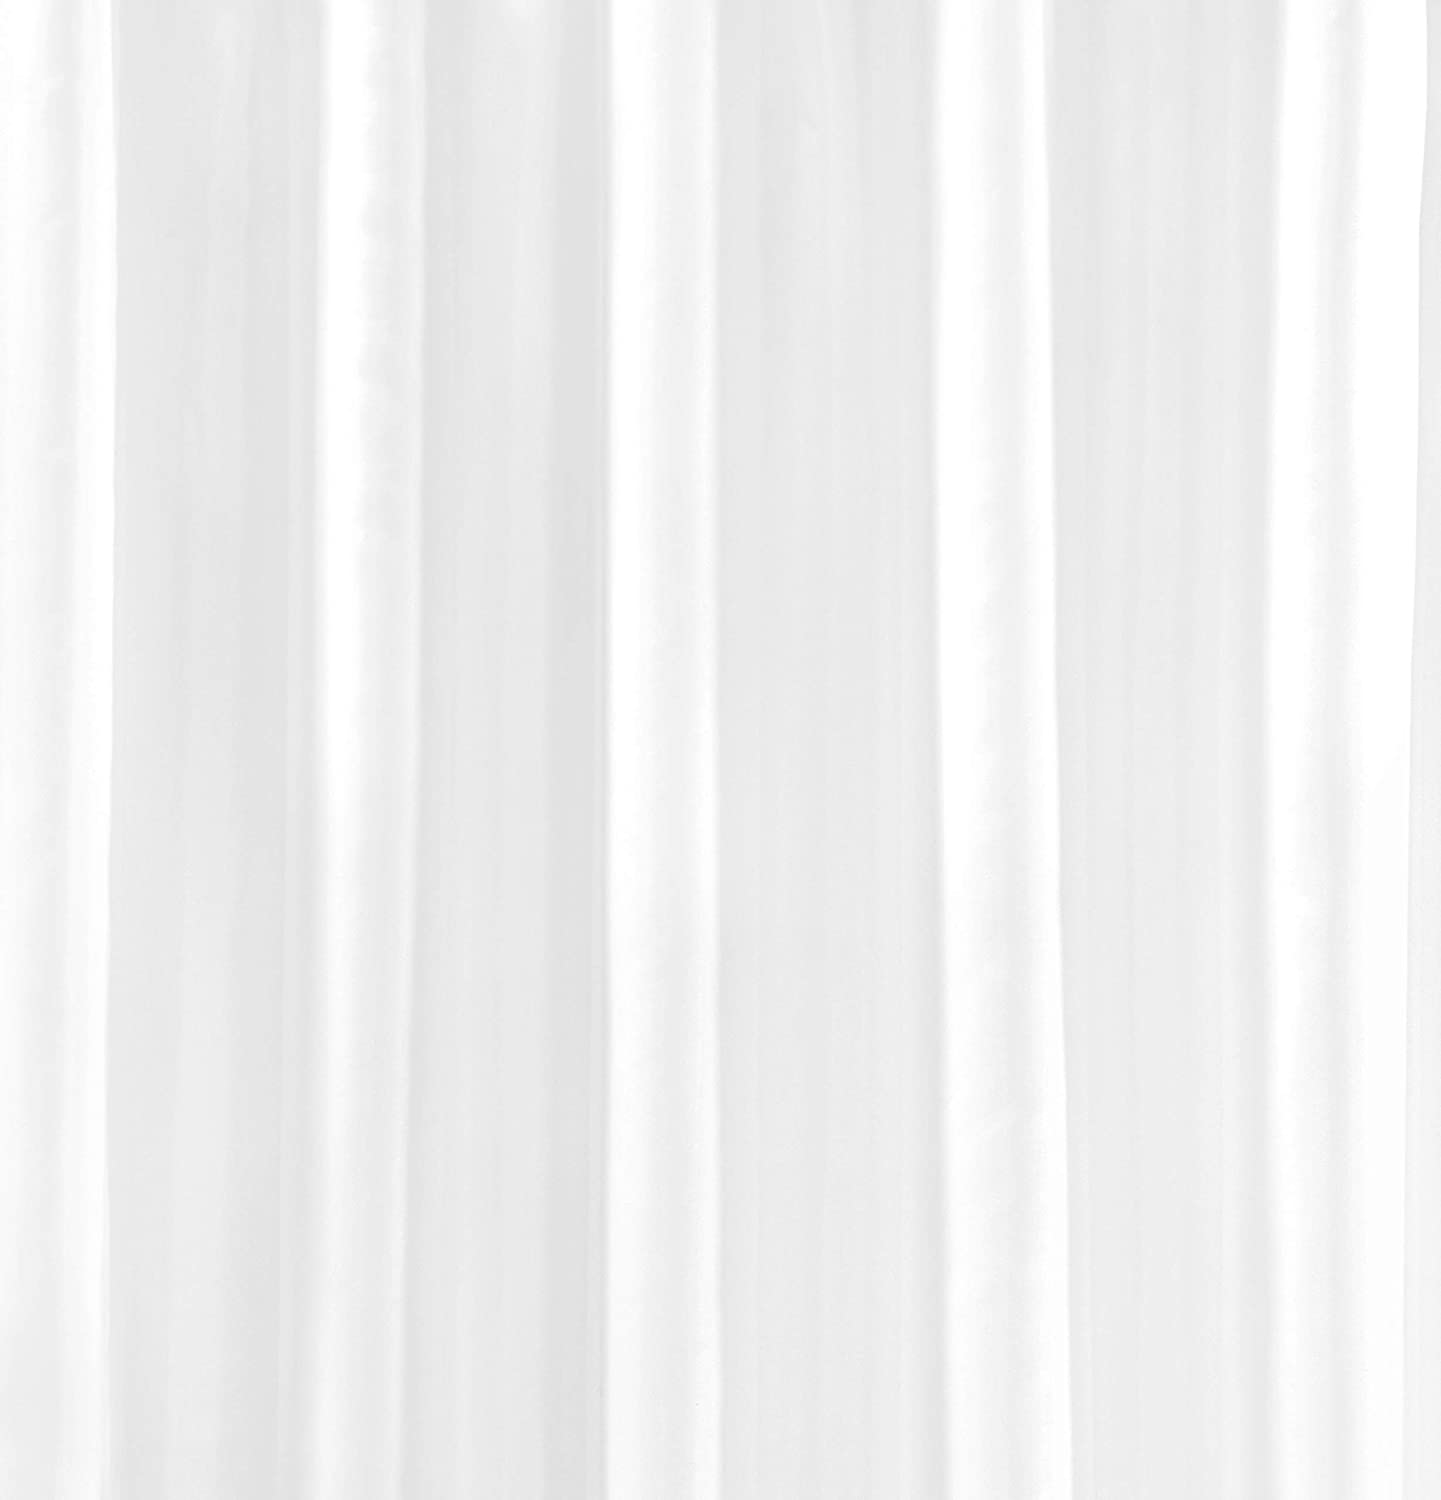 VIBRANT WHITE SHOWER CURTAIN 180CM X 180CM INCLUDES RINGS